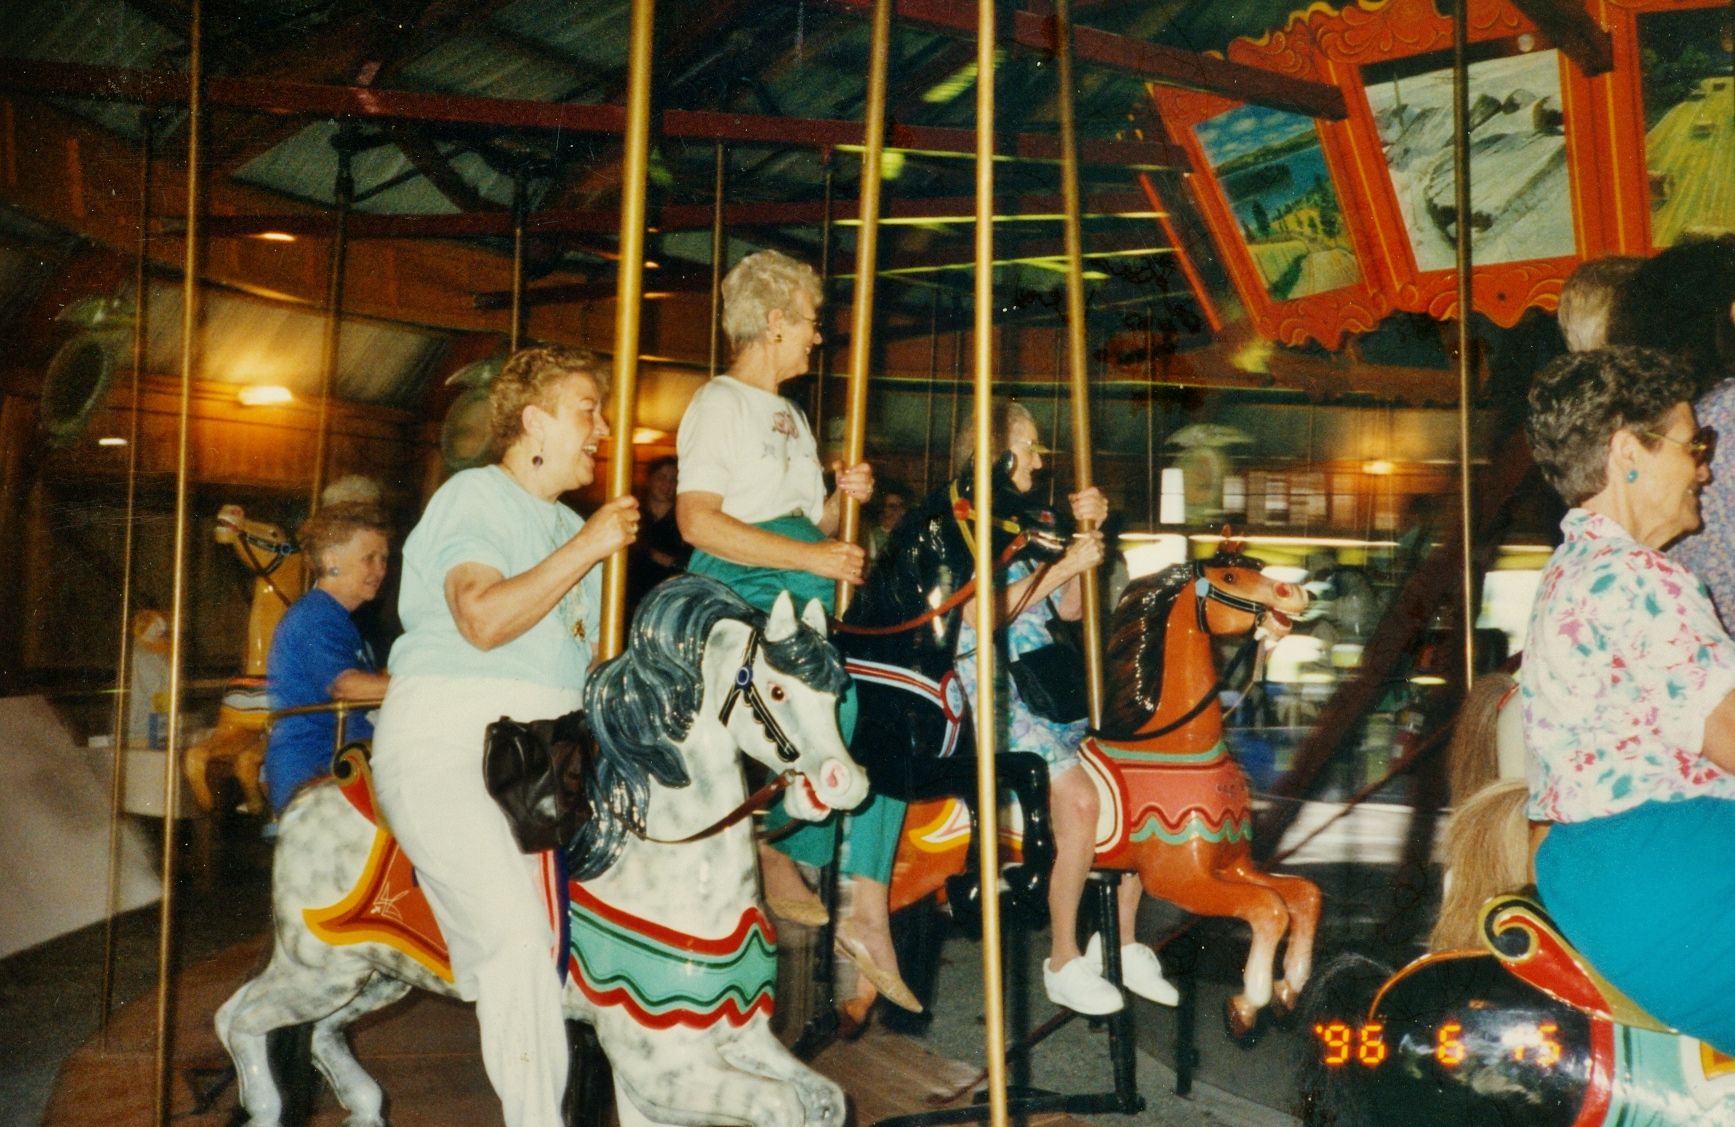 Roseneath Carousel